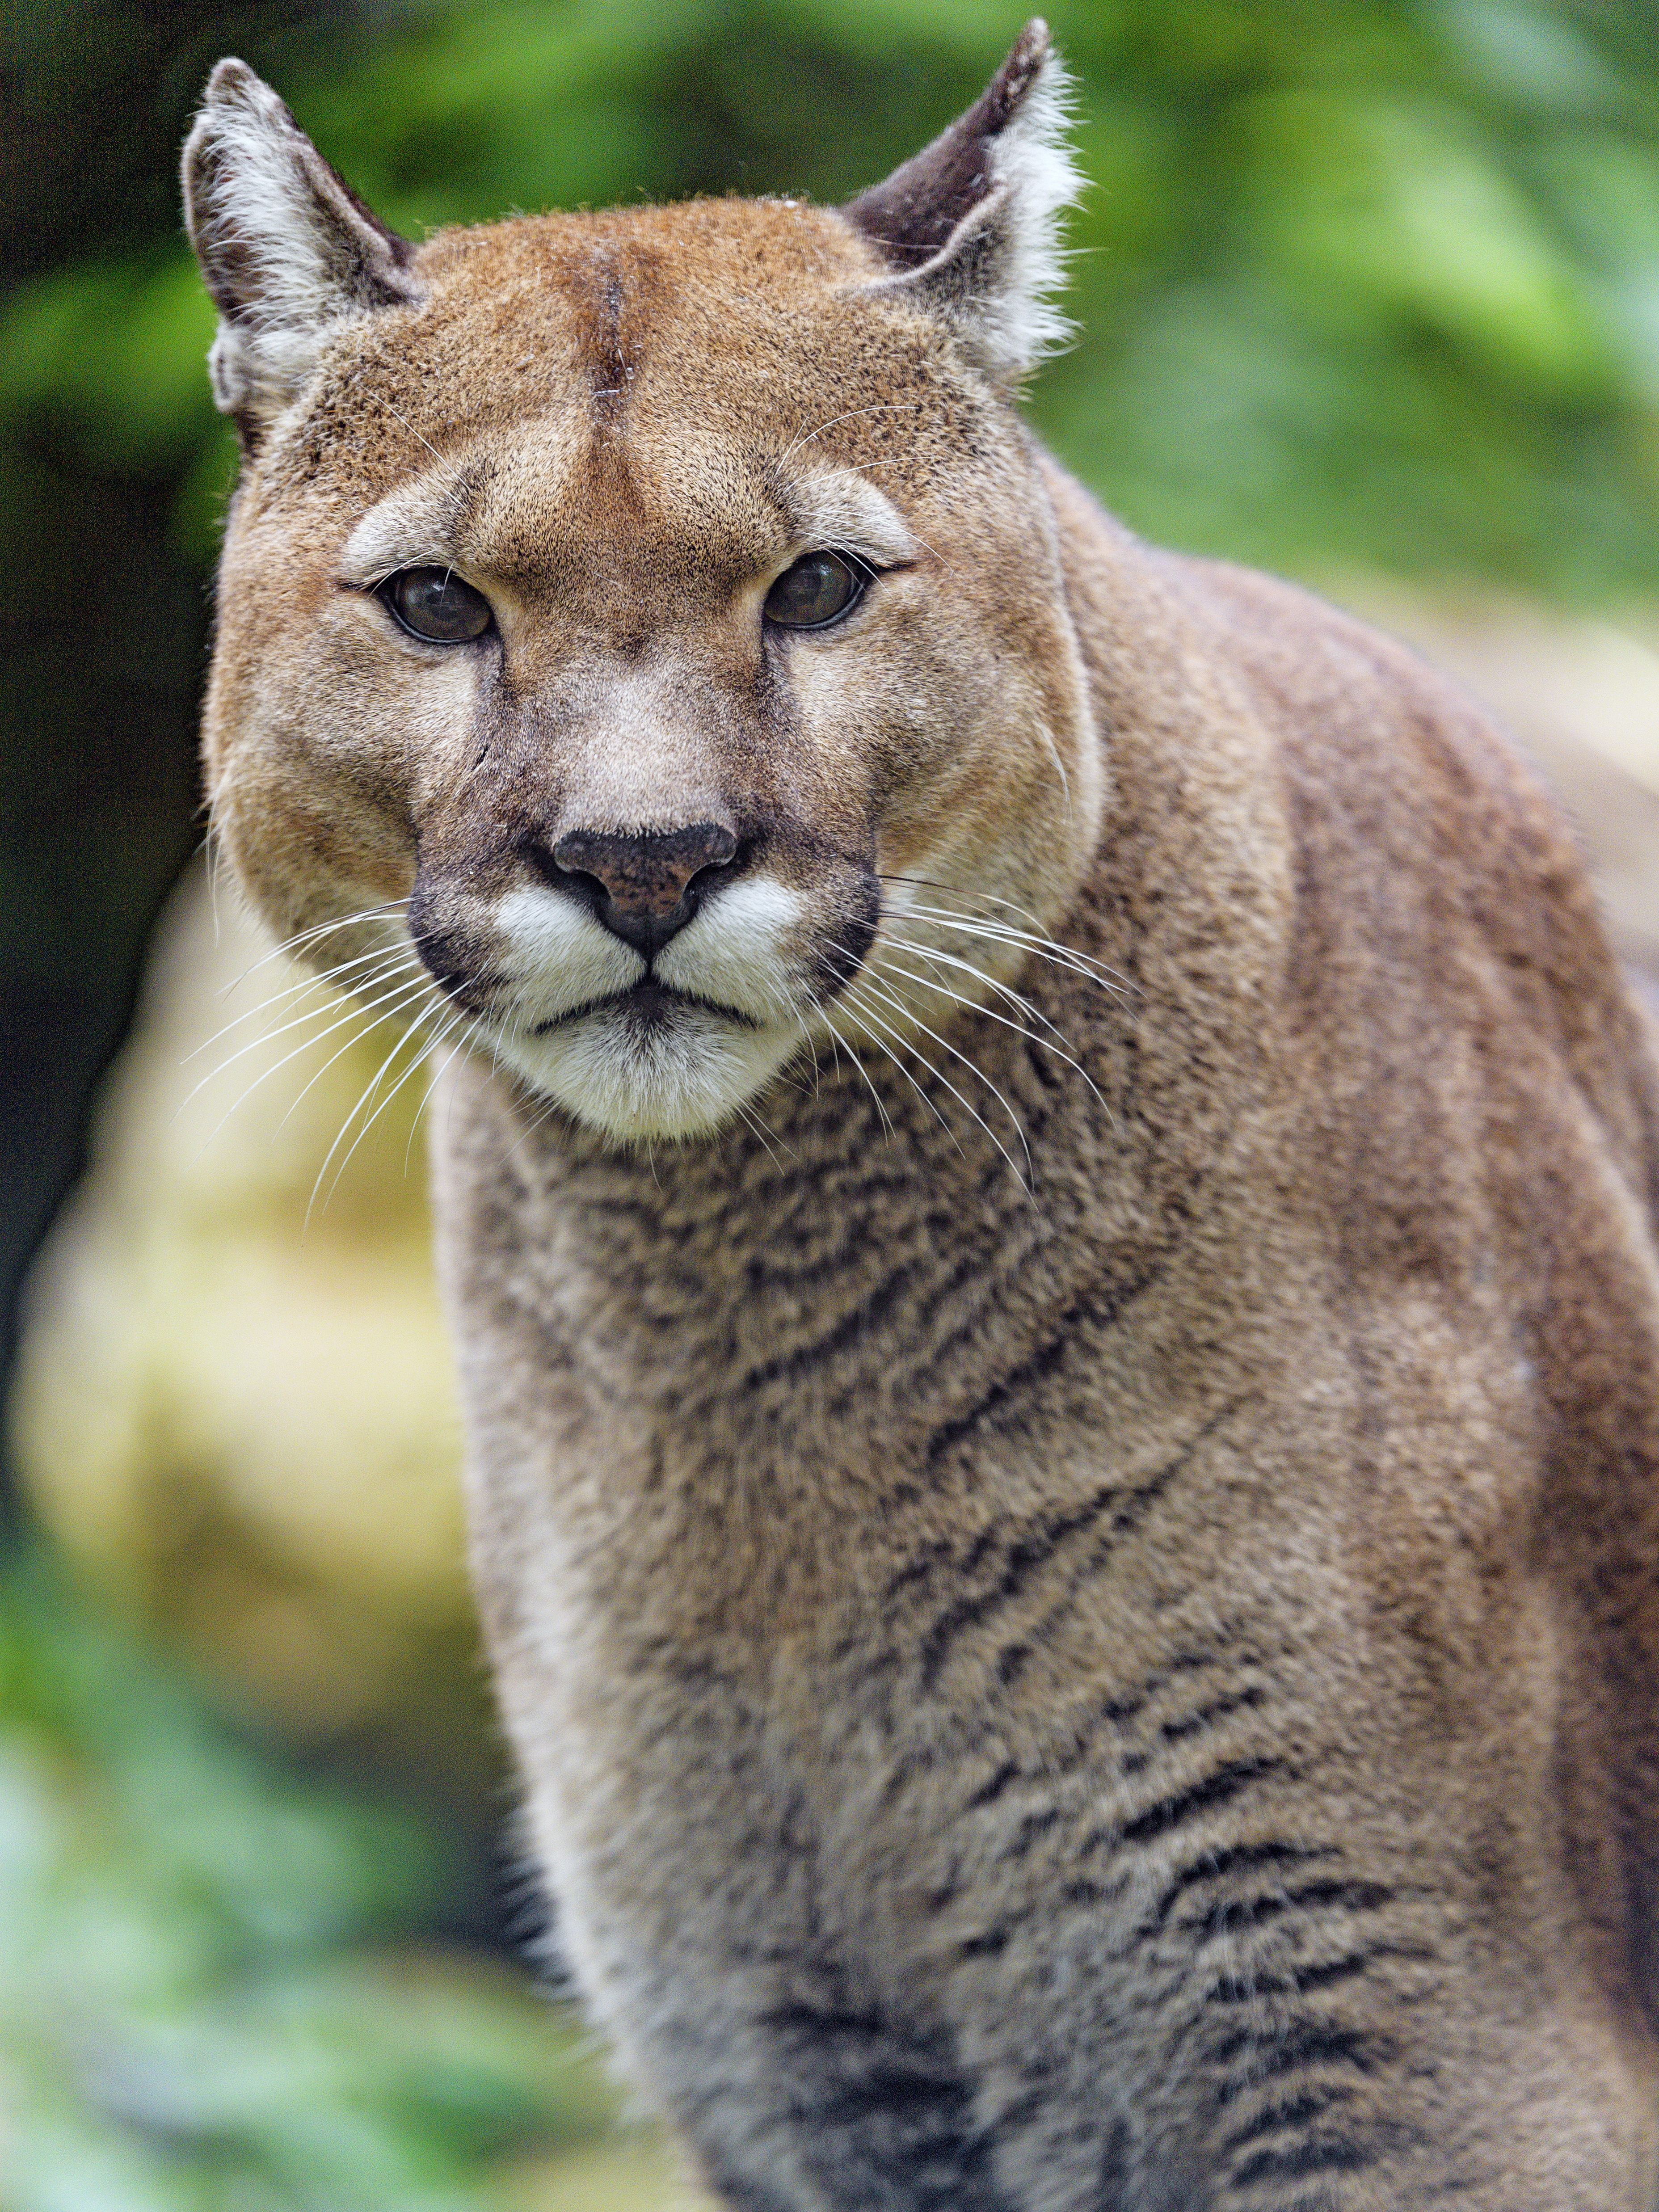 130282 download wallpaper Animals, Puma, Big Cat, Predator, Sight, Opinion screensavers and pictures for free